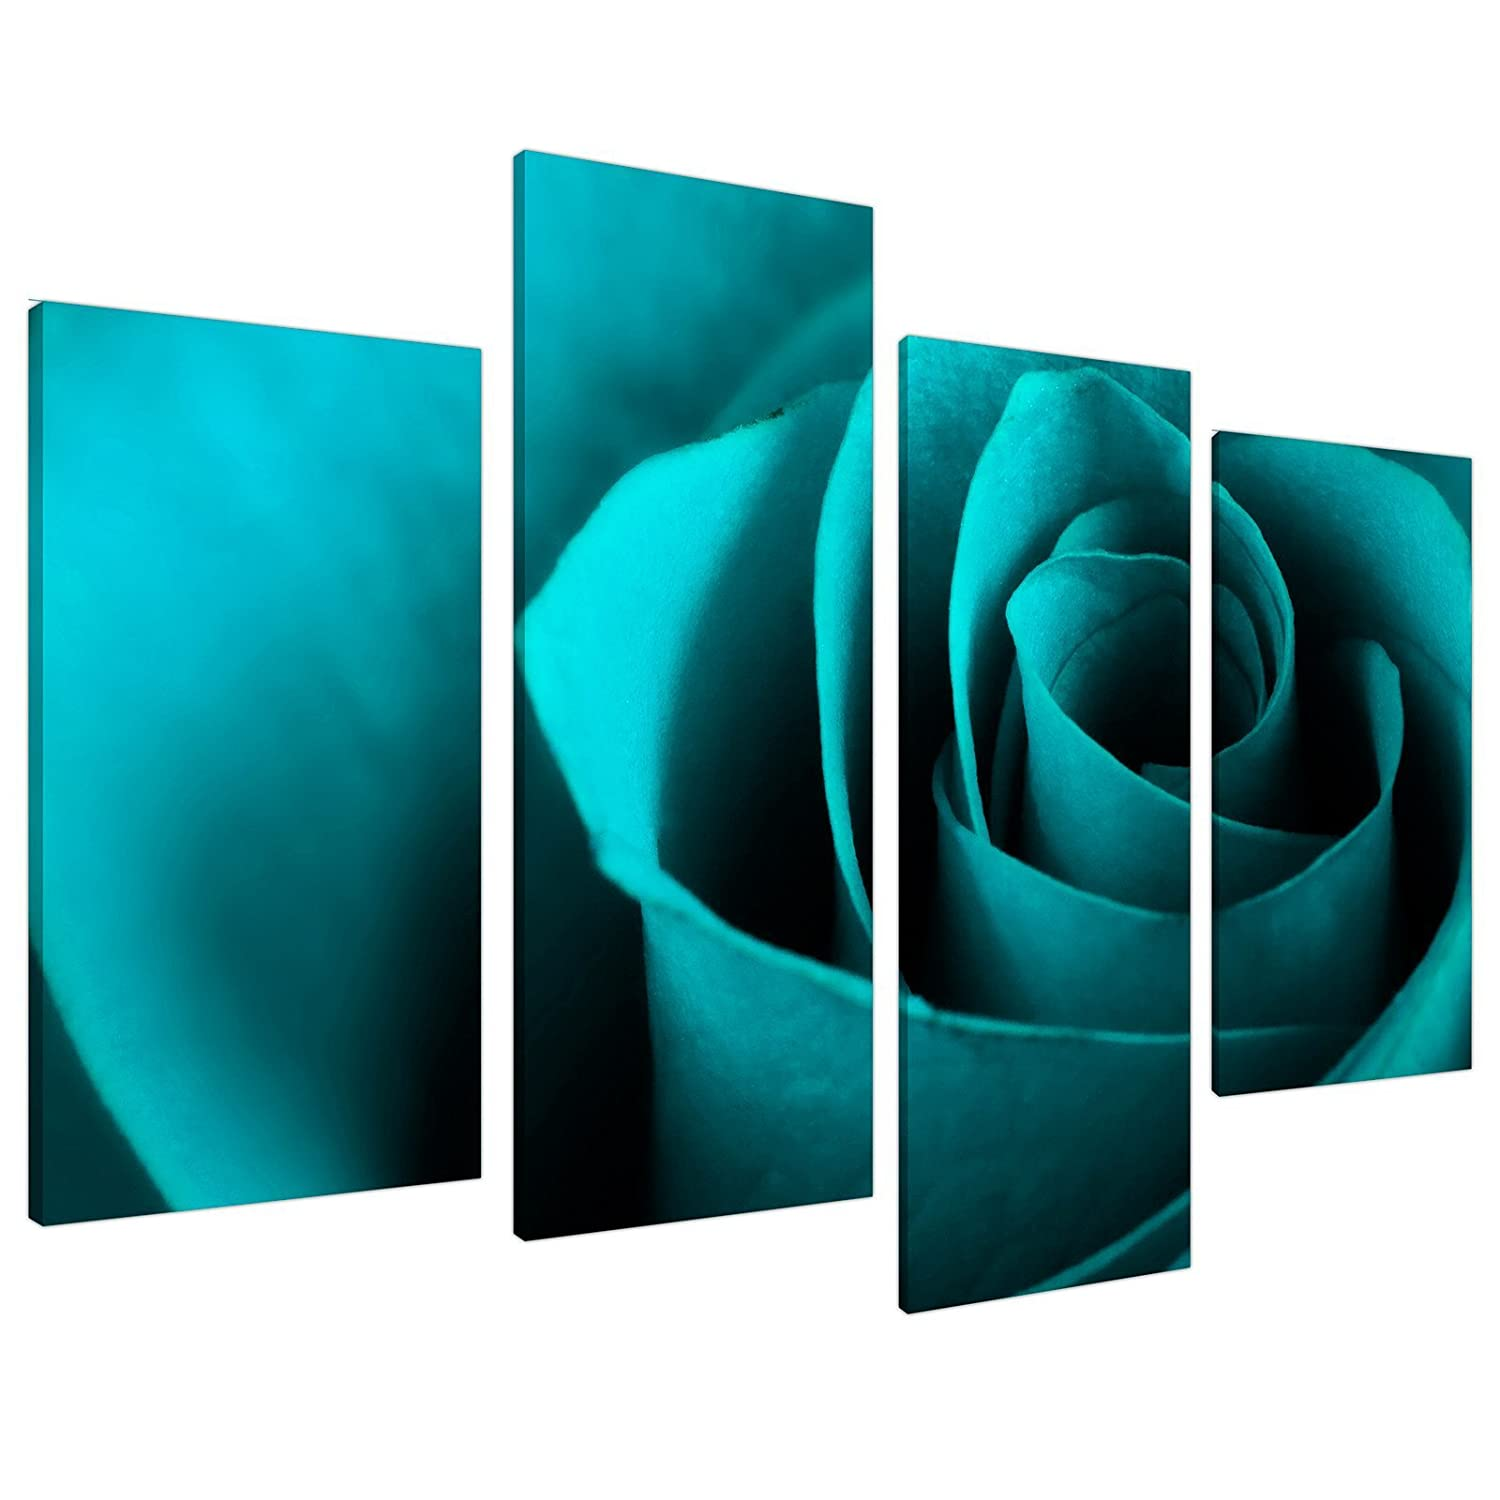 Teal Turquoise Blue Rose Petal Flower Floral Canvas - Set of 4 - 51 Inches Wide - 4109 - Wallfillers